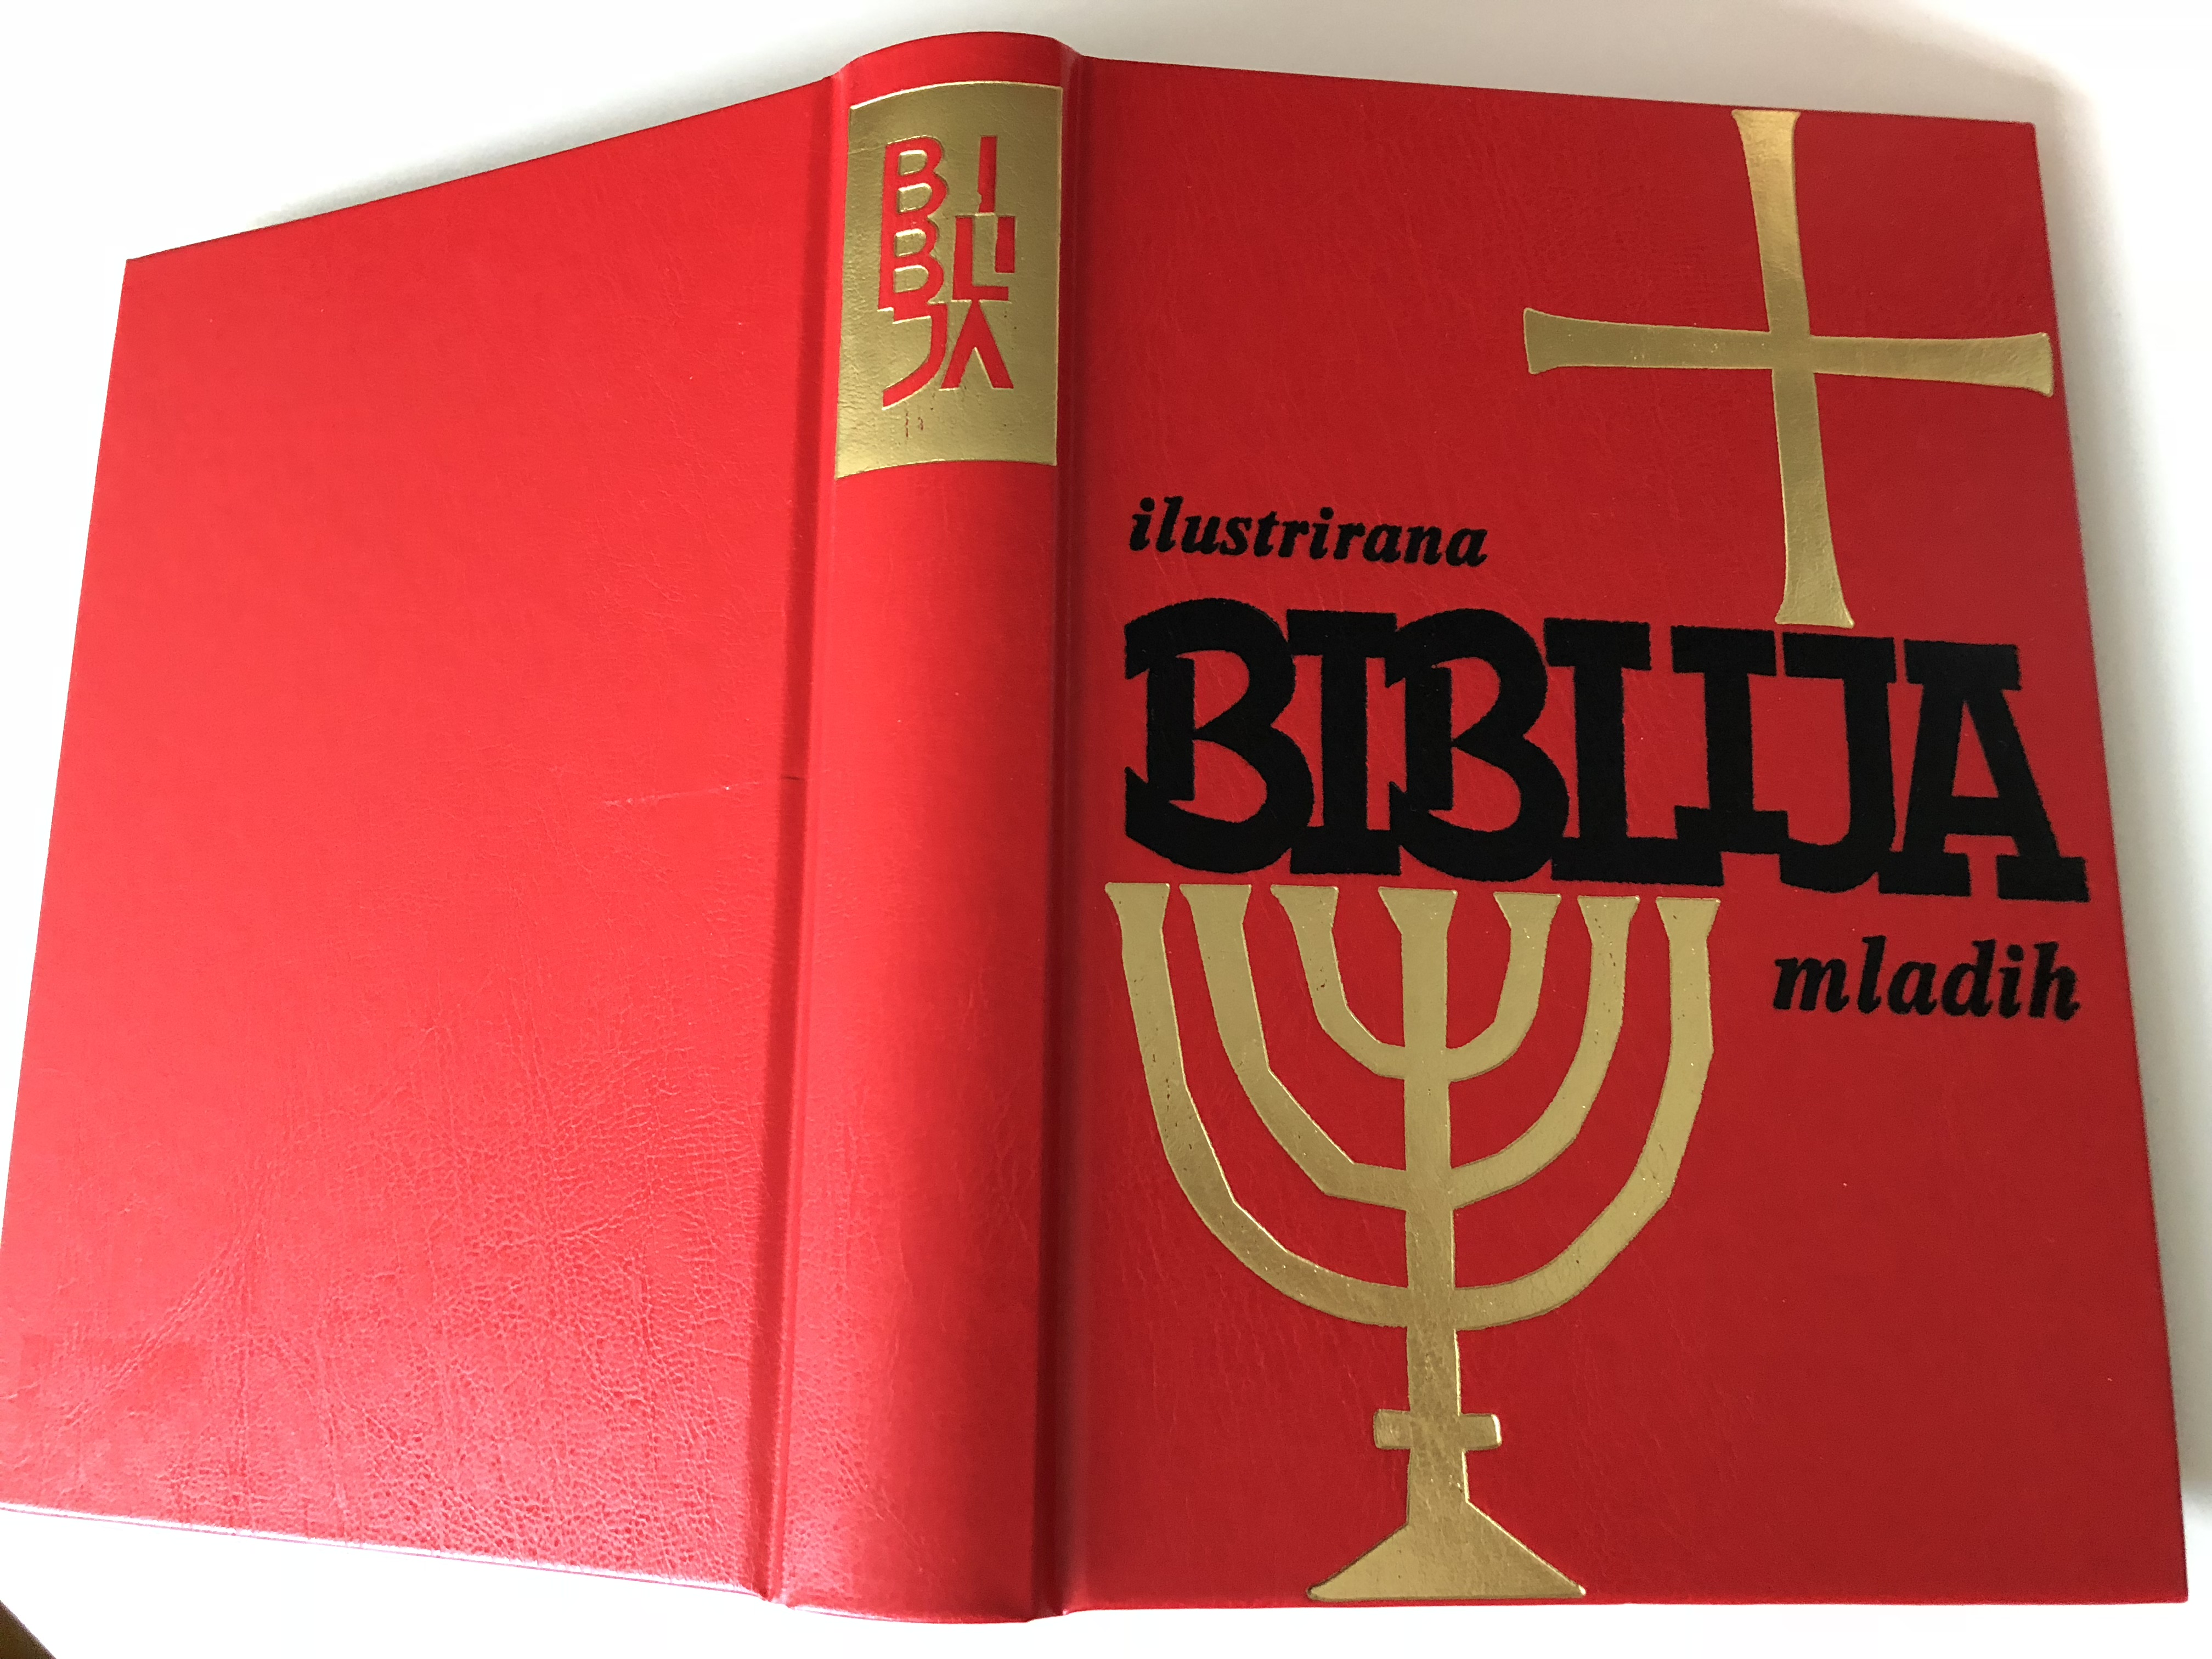 croatian-illustrated-bible-for-young-people-red-w-cross-and-candlestand-17-.jpg